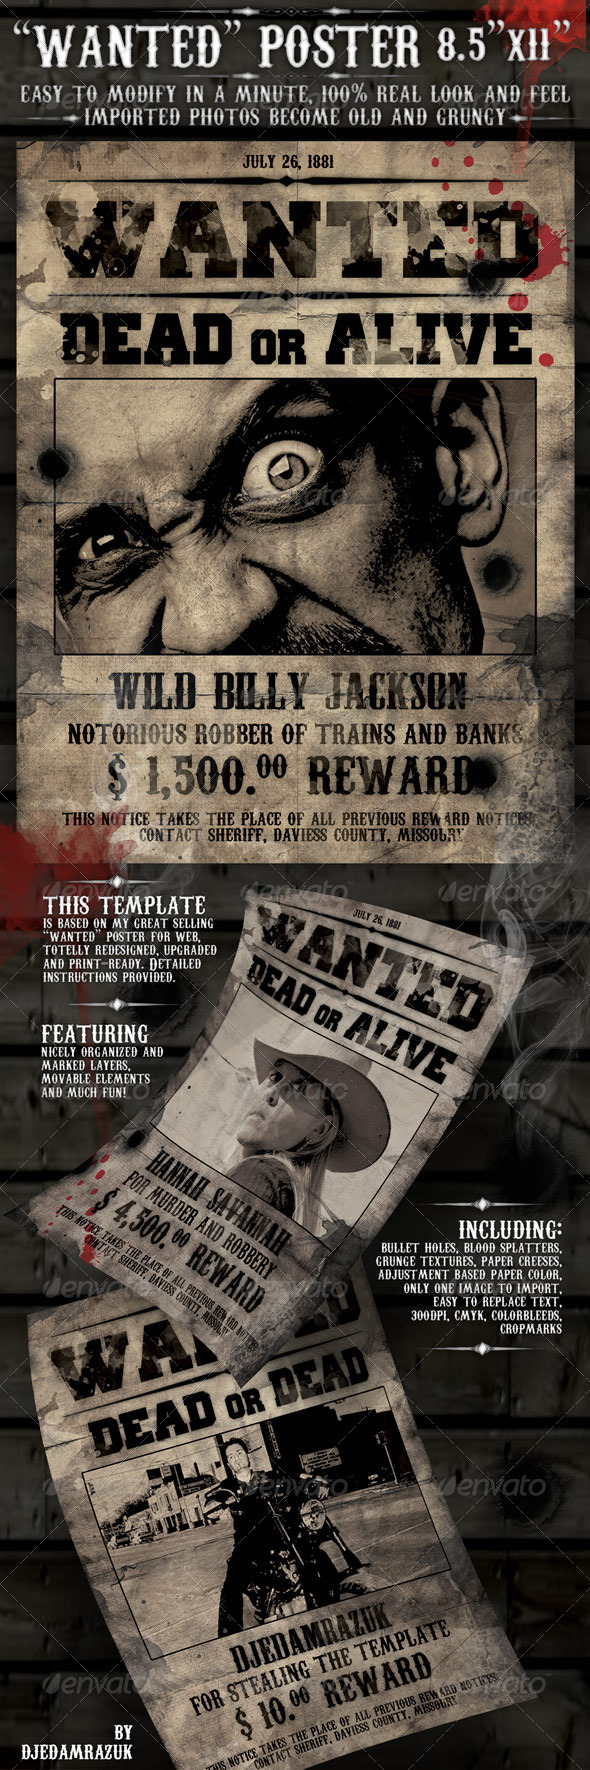 15 Best Wanted Poster Templates PSD Download – Wanted Poster Template Download